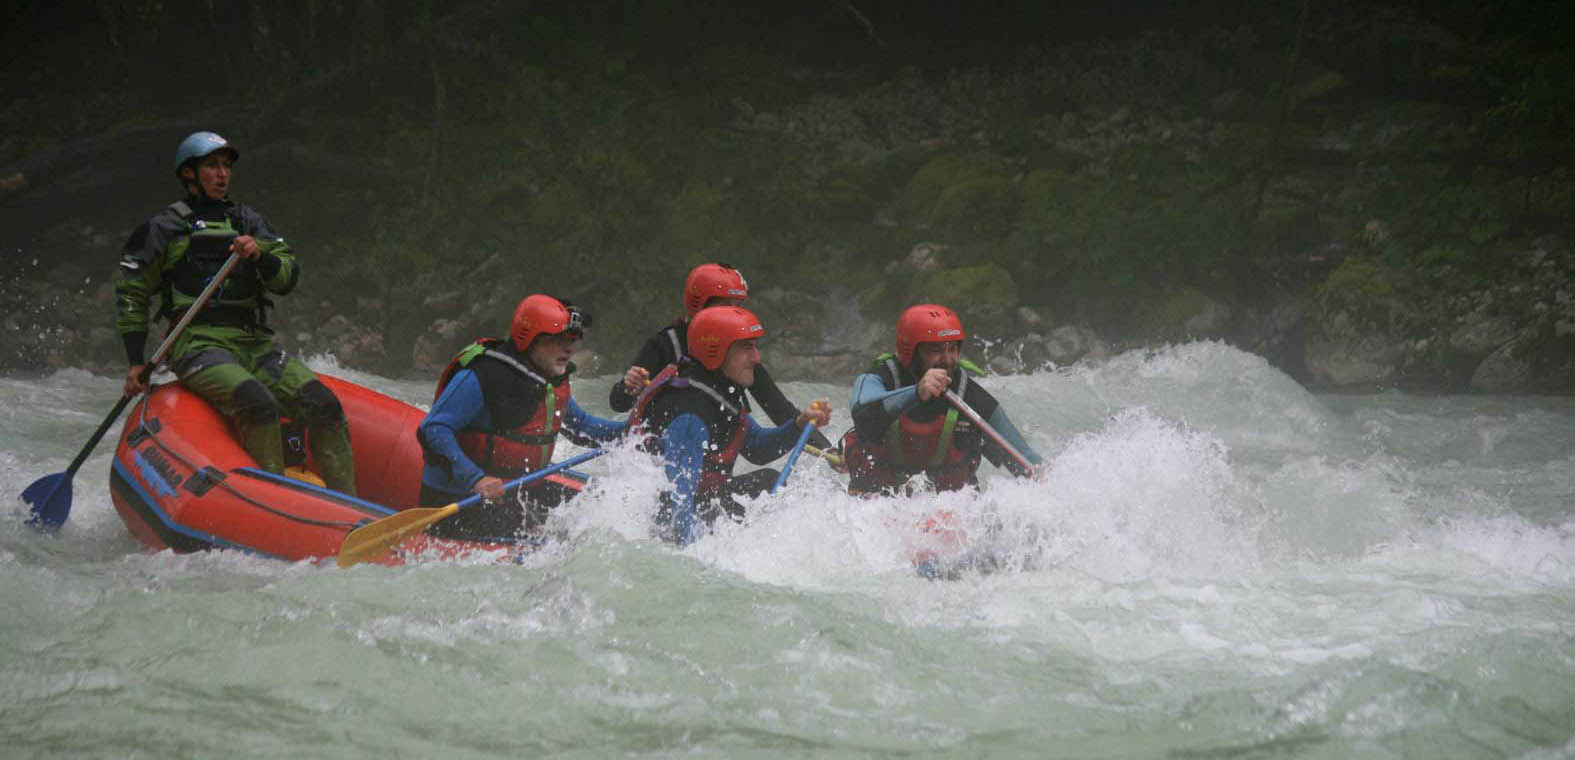 WHITE-WATER RAFTING IN SLOVENIA